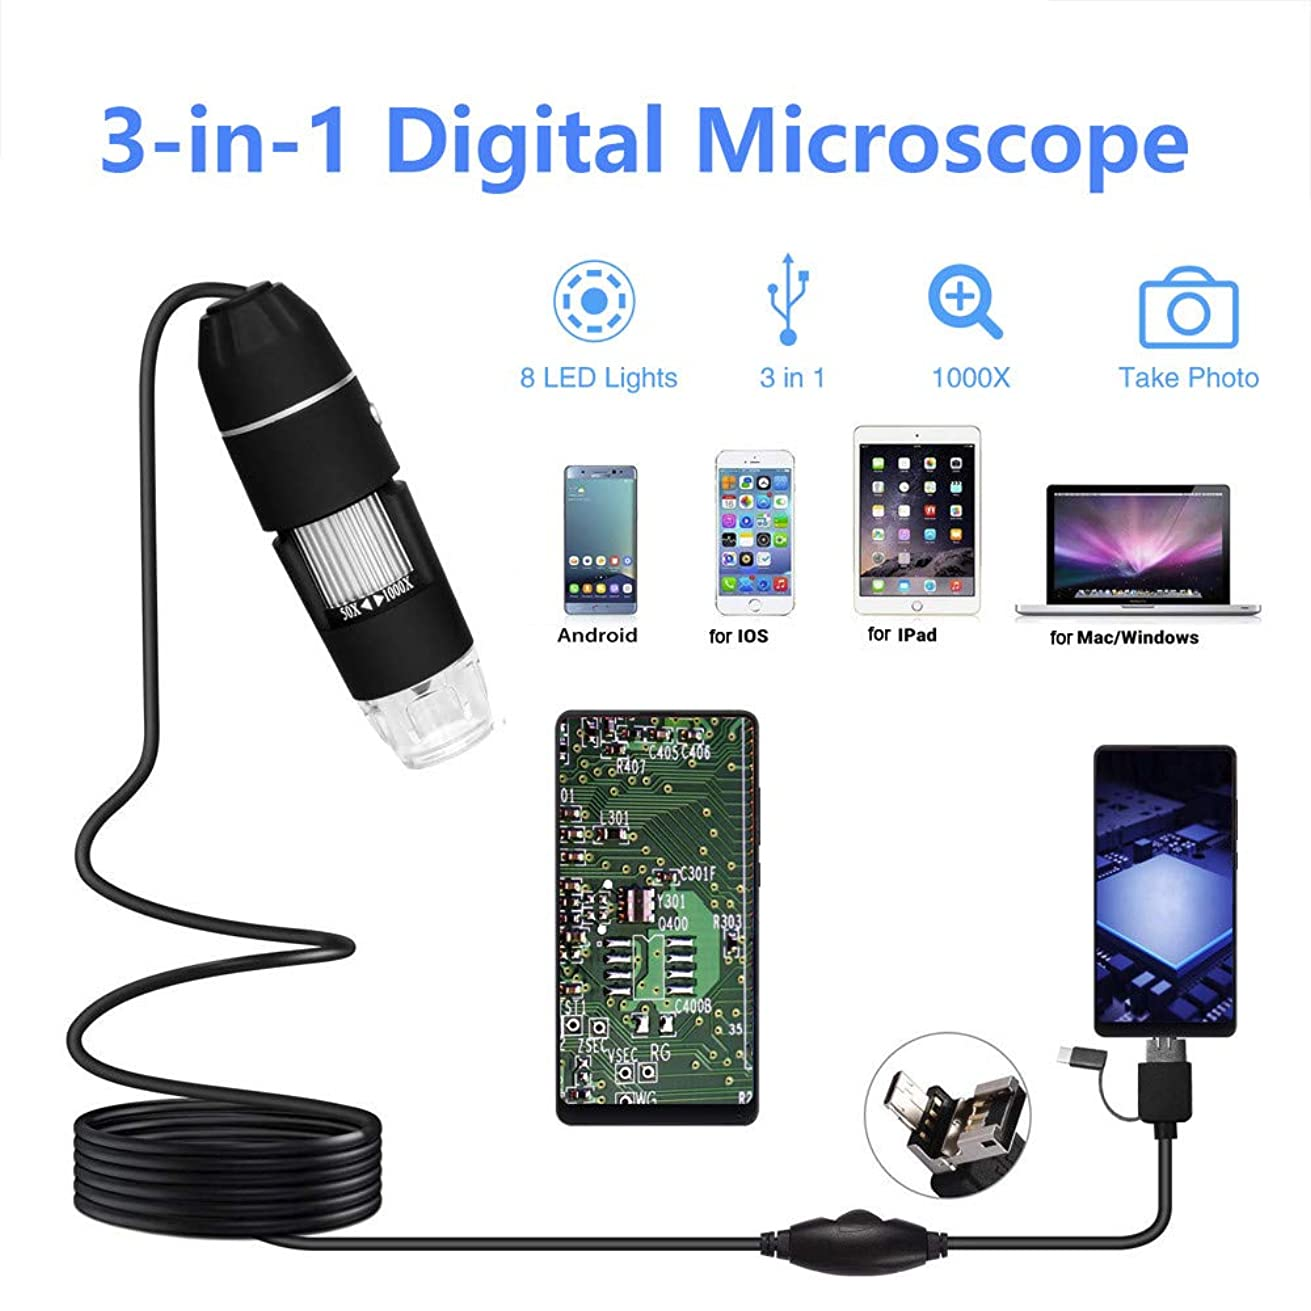 FIged Microscope 300,000 Pixel Three in One USB Type-C OTG HD Electron Digital Microscope for Industry School Home Strong Compatibility